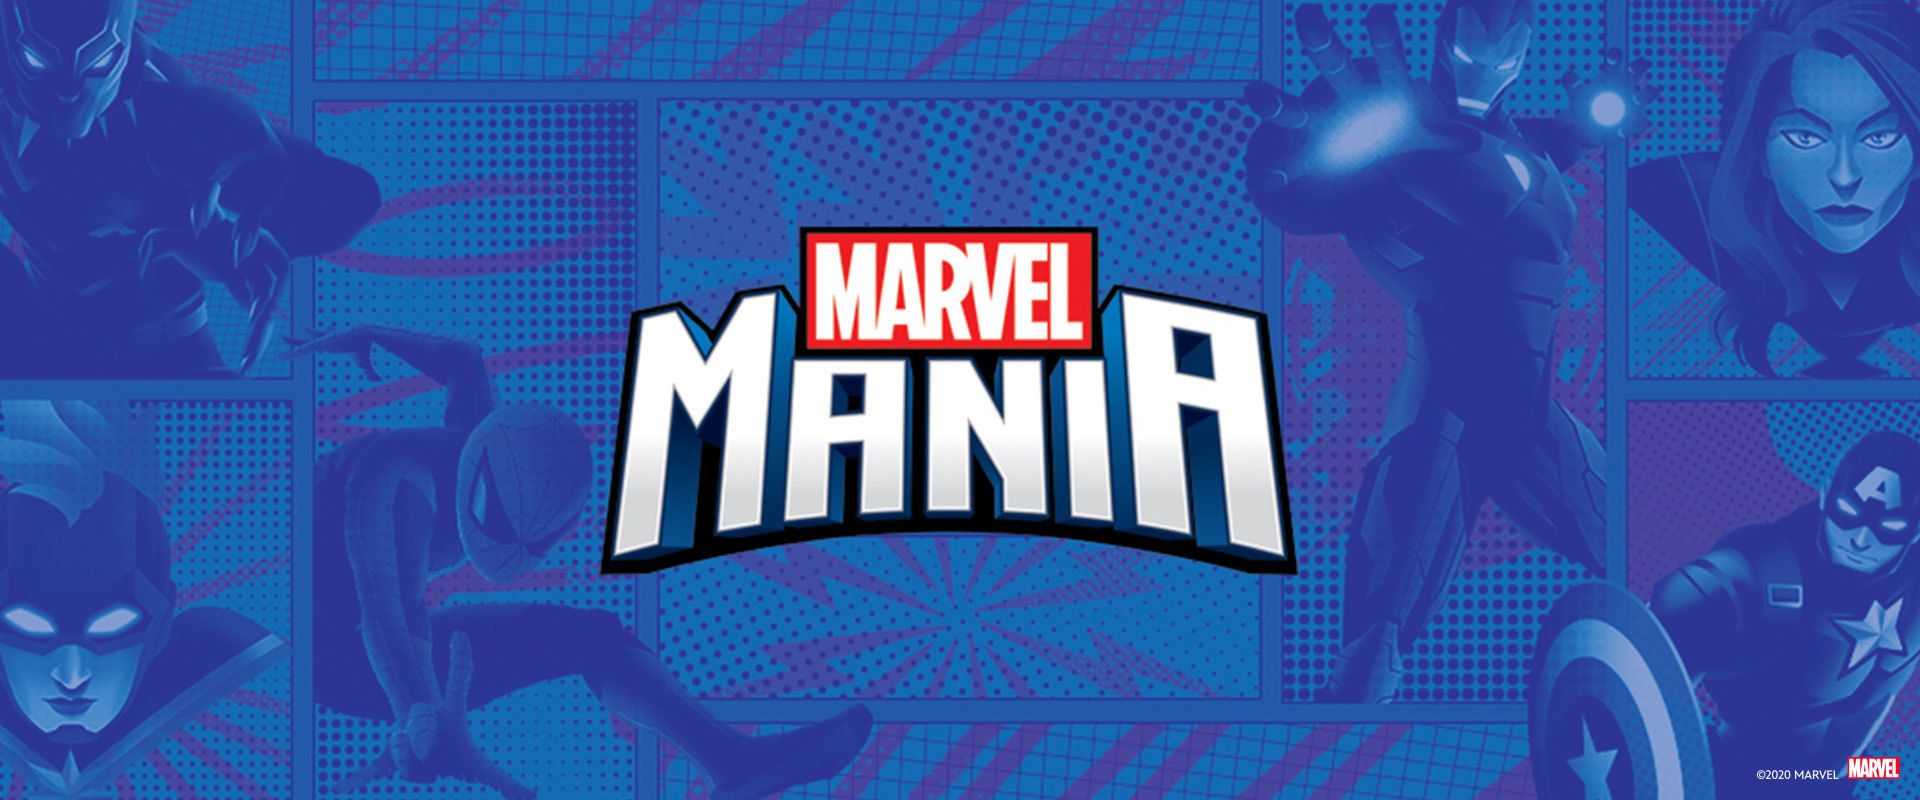 Shop Page Hero Banner - Marvel Mania Promotion